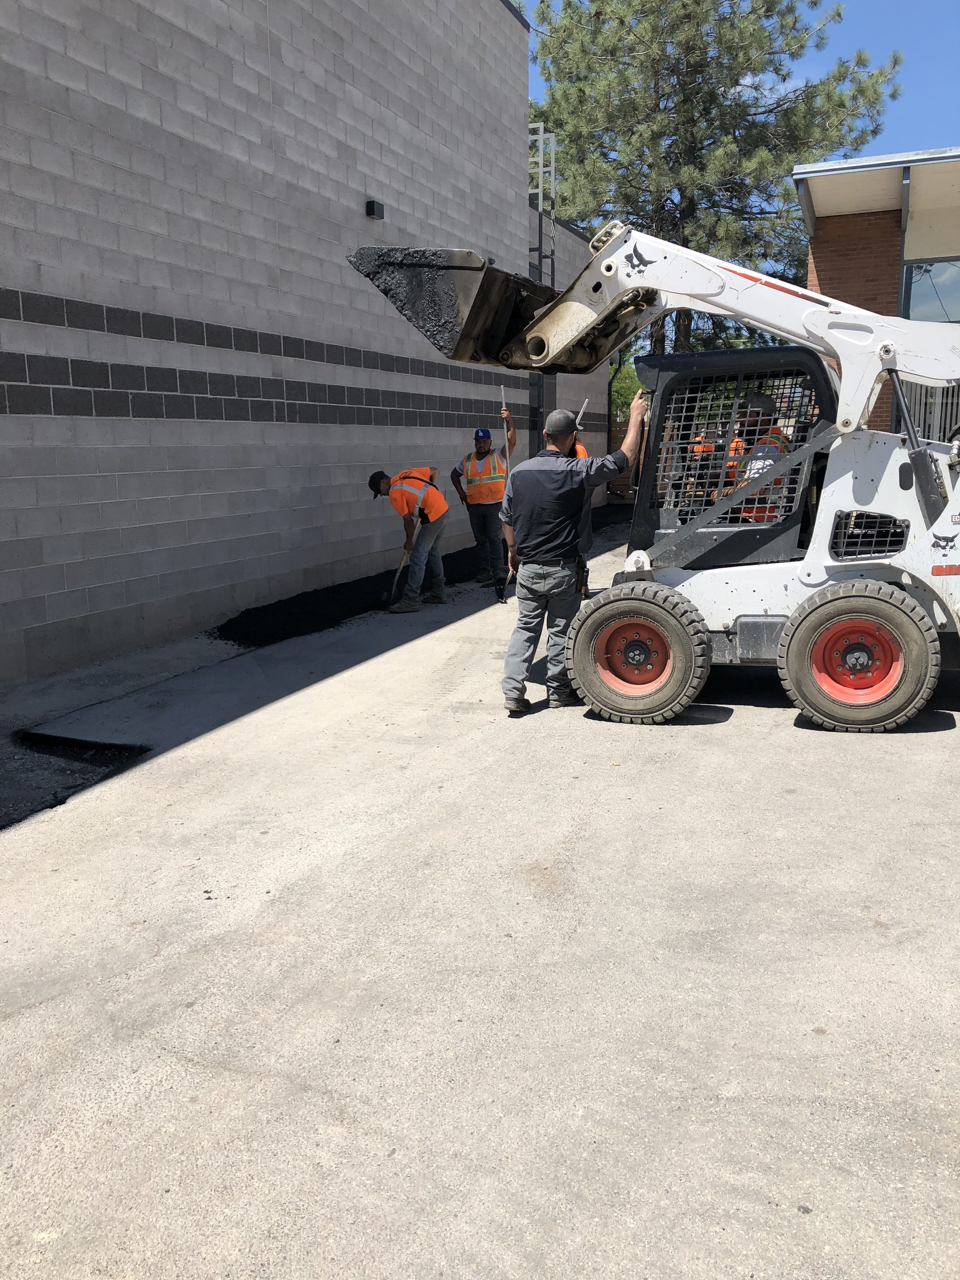 It took a number of weeks but we finally got asphalt. It's great to finally have a rear parking area and to have things cleaned up around the edge of the building, but even more important it means that the HVAC condensers were able to be placed.